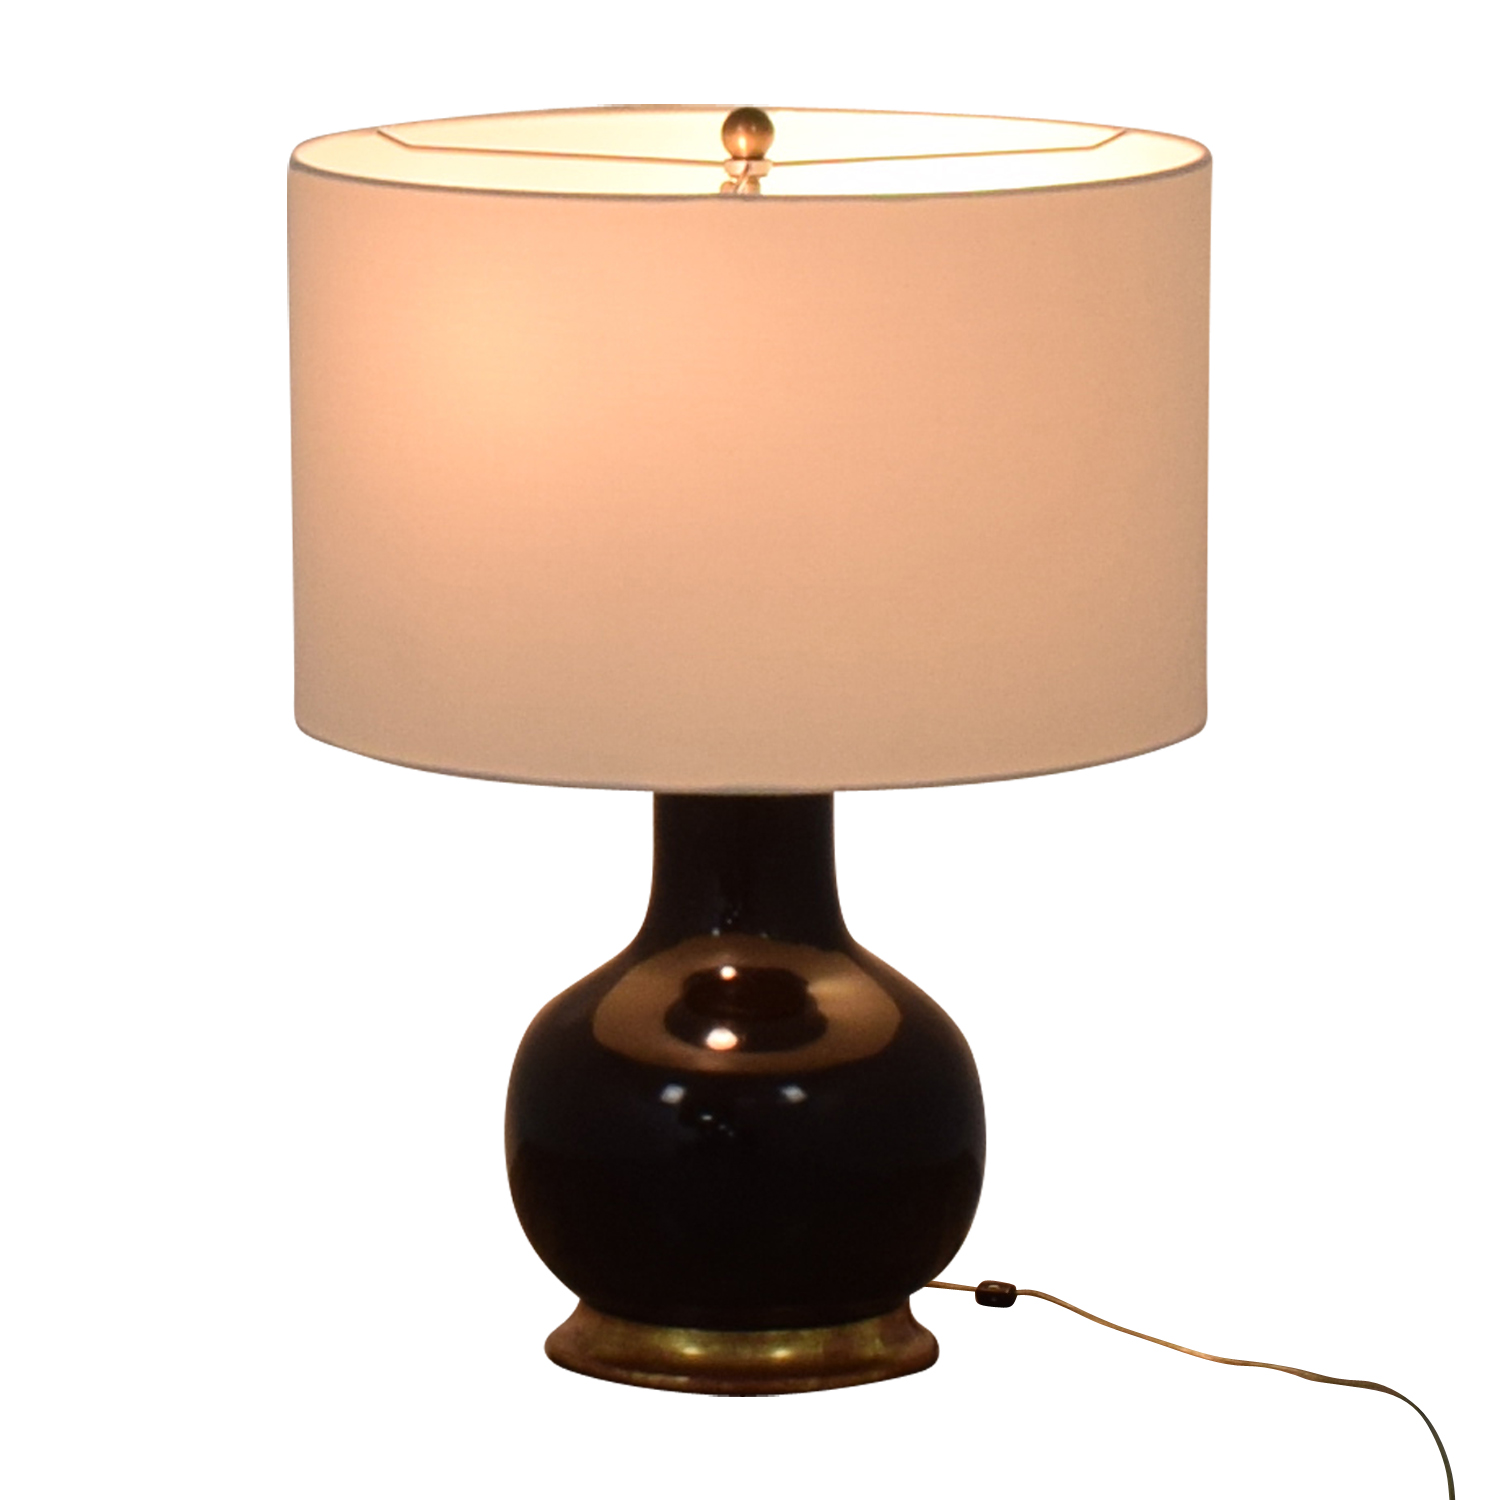 Mecox Gardens Mecox Gardens Christopher Spitzmiller Brown Lamps nyc